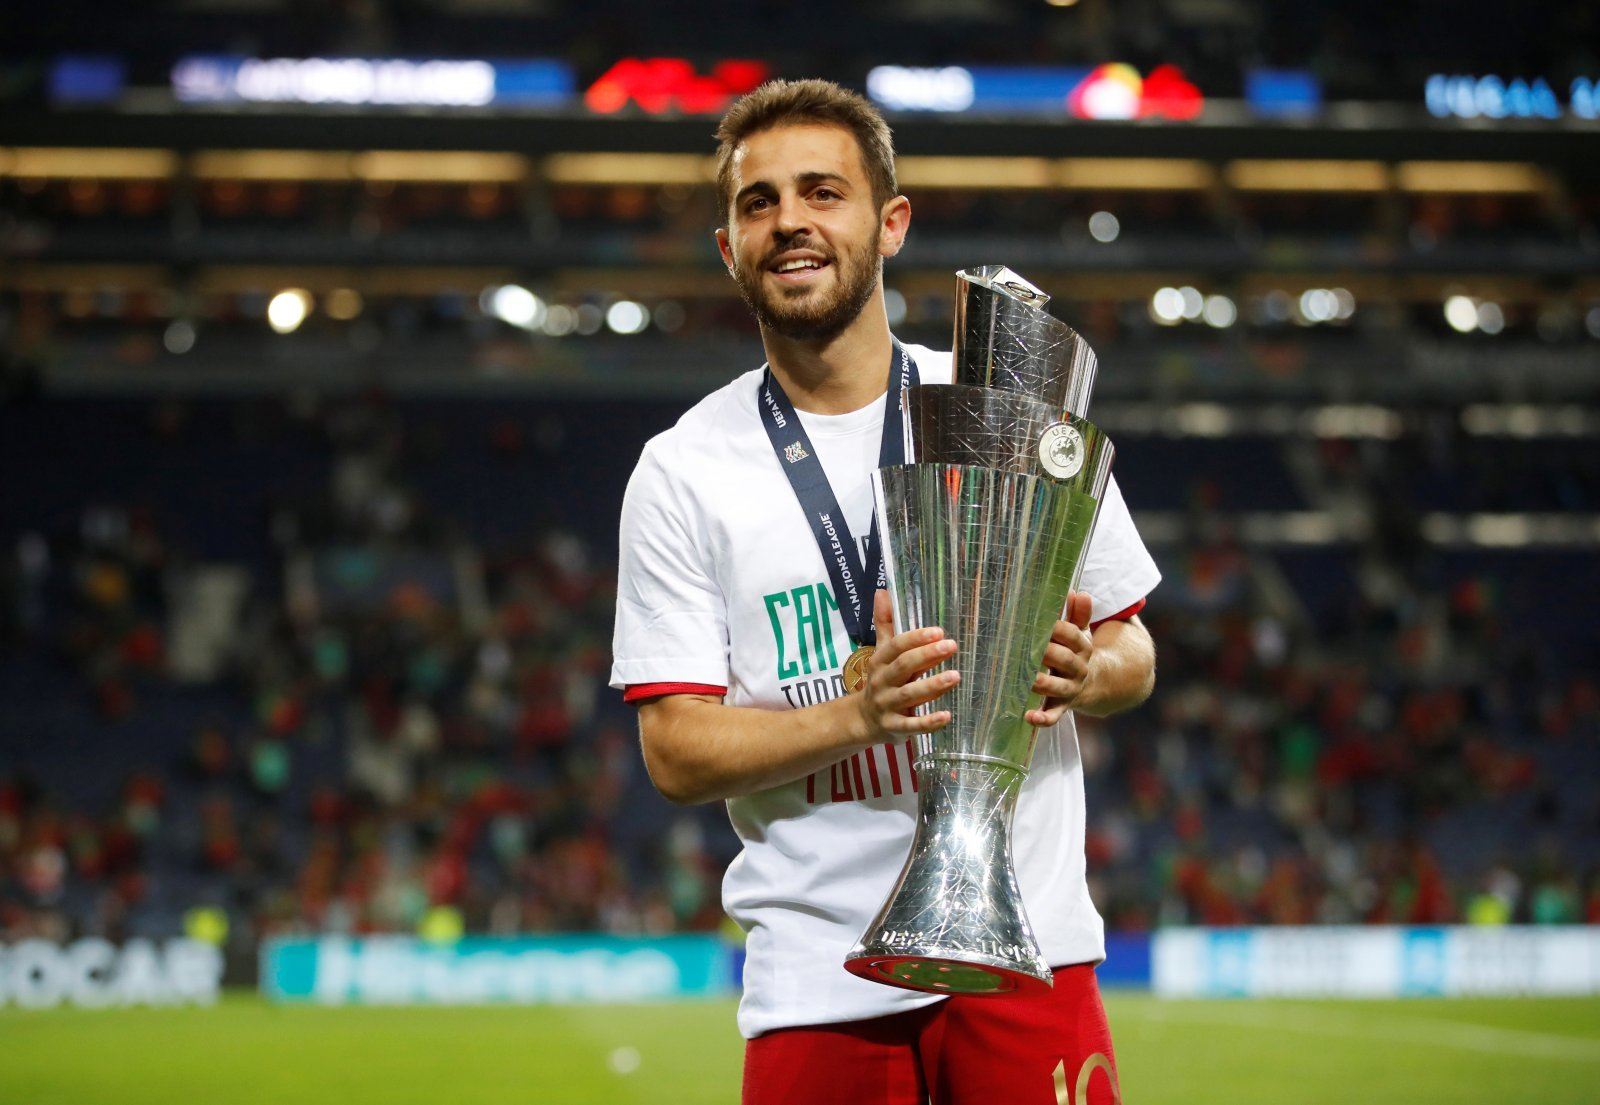 Manchester City: Bernardo Silva had one of the best seasons of any player in recent memory